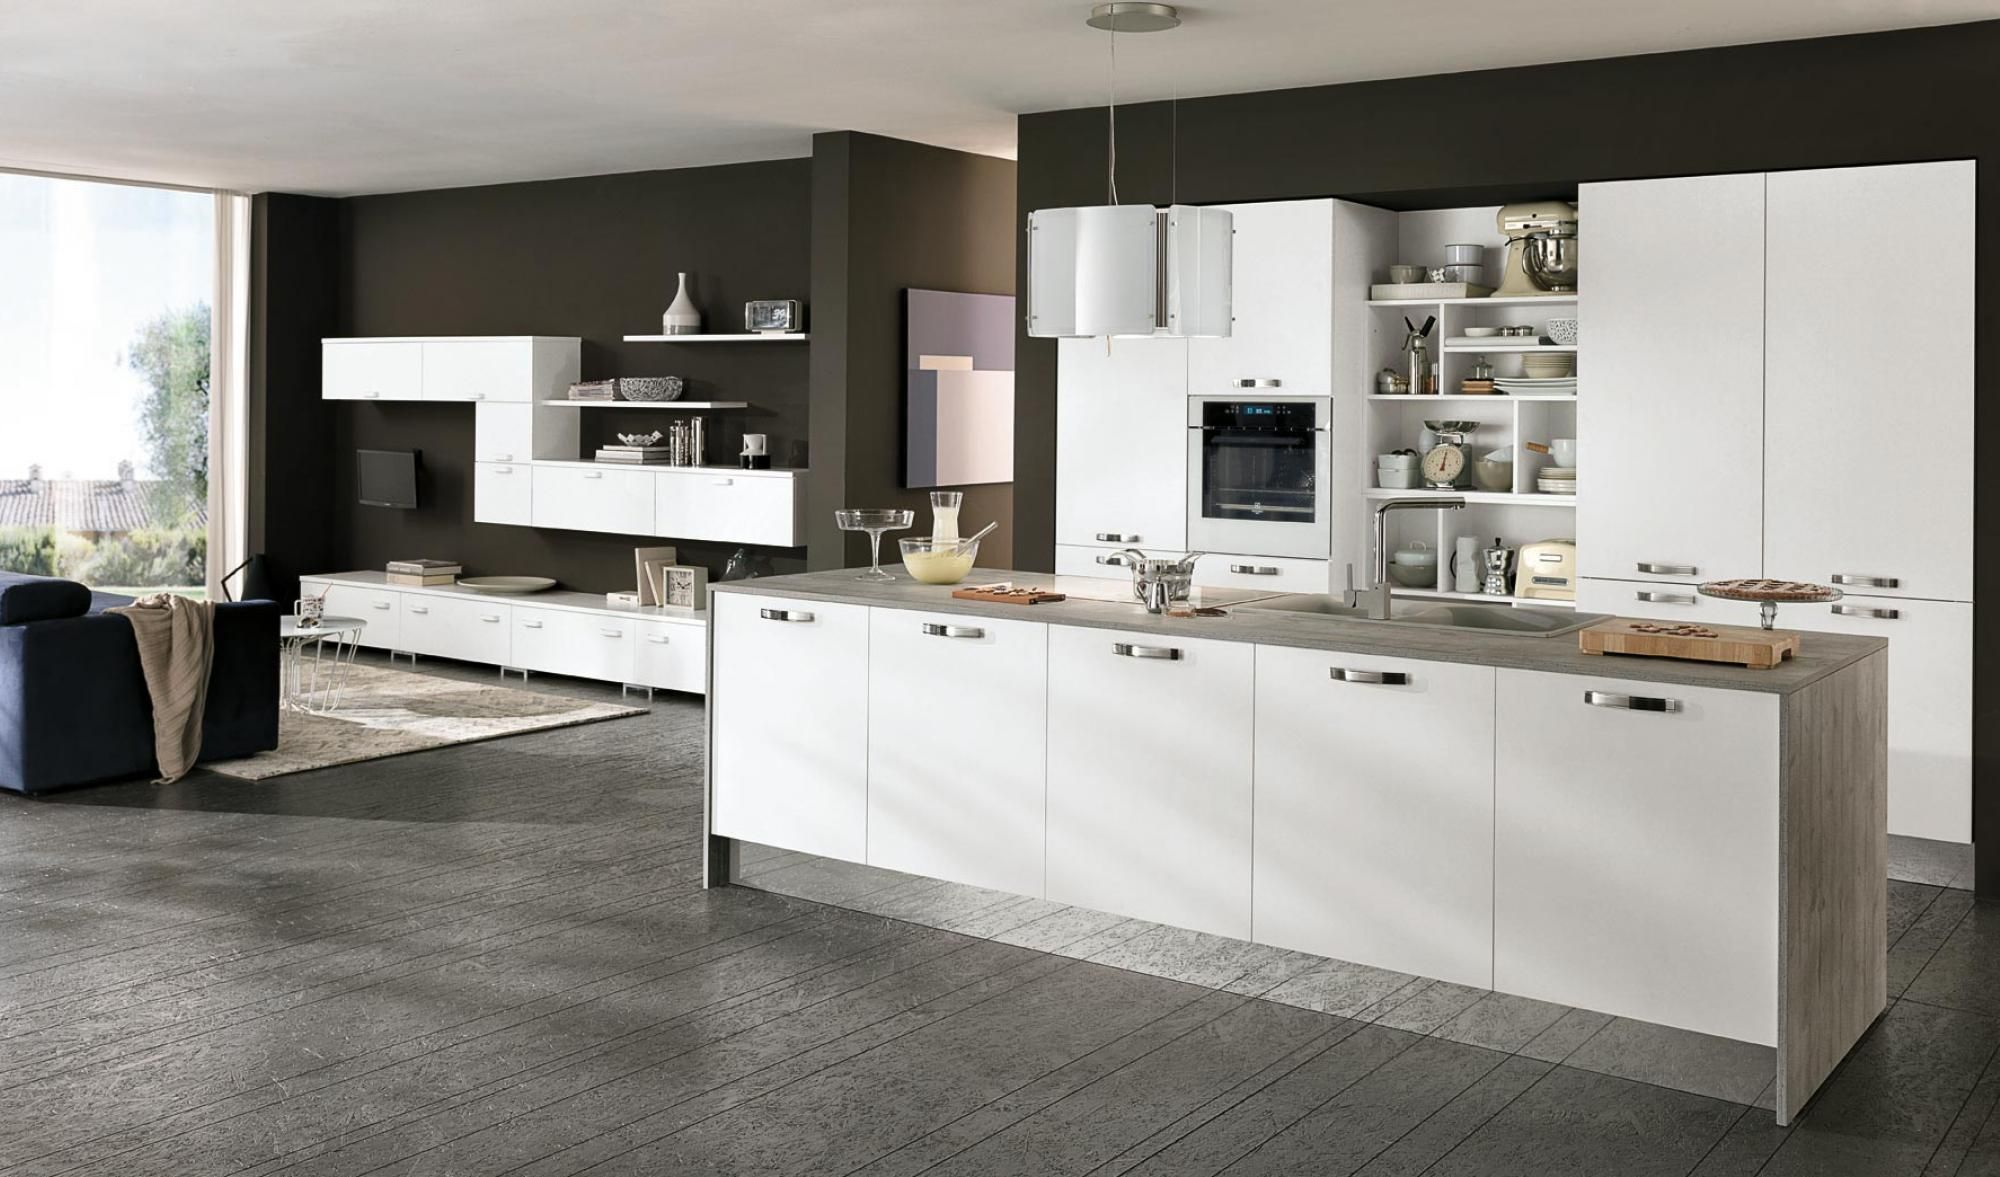 Cucina Berloni Modello Quadra Quadra Kitchen 2015 Edition White Colombini Casa